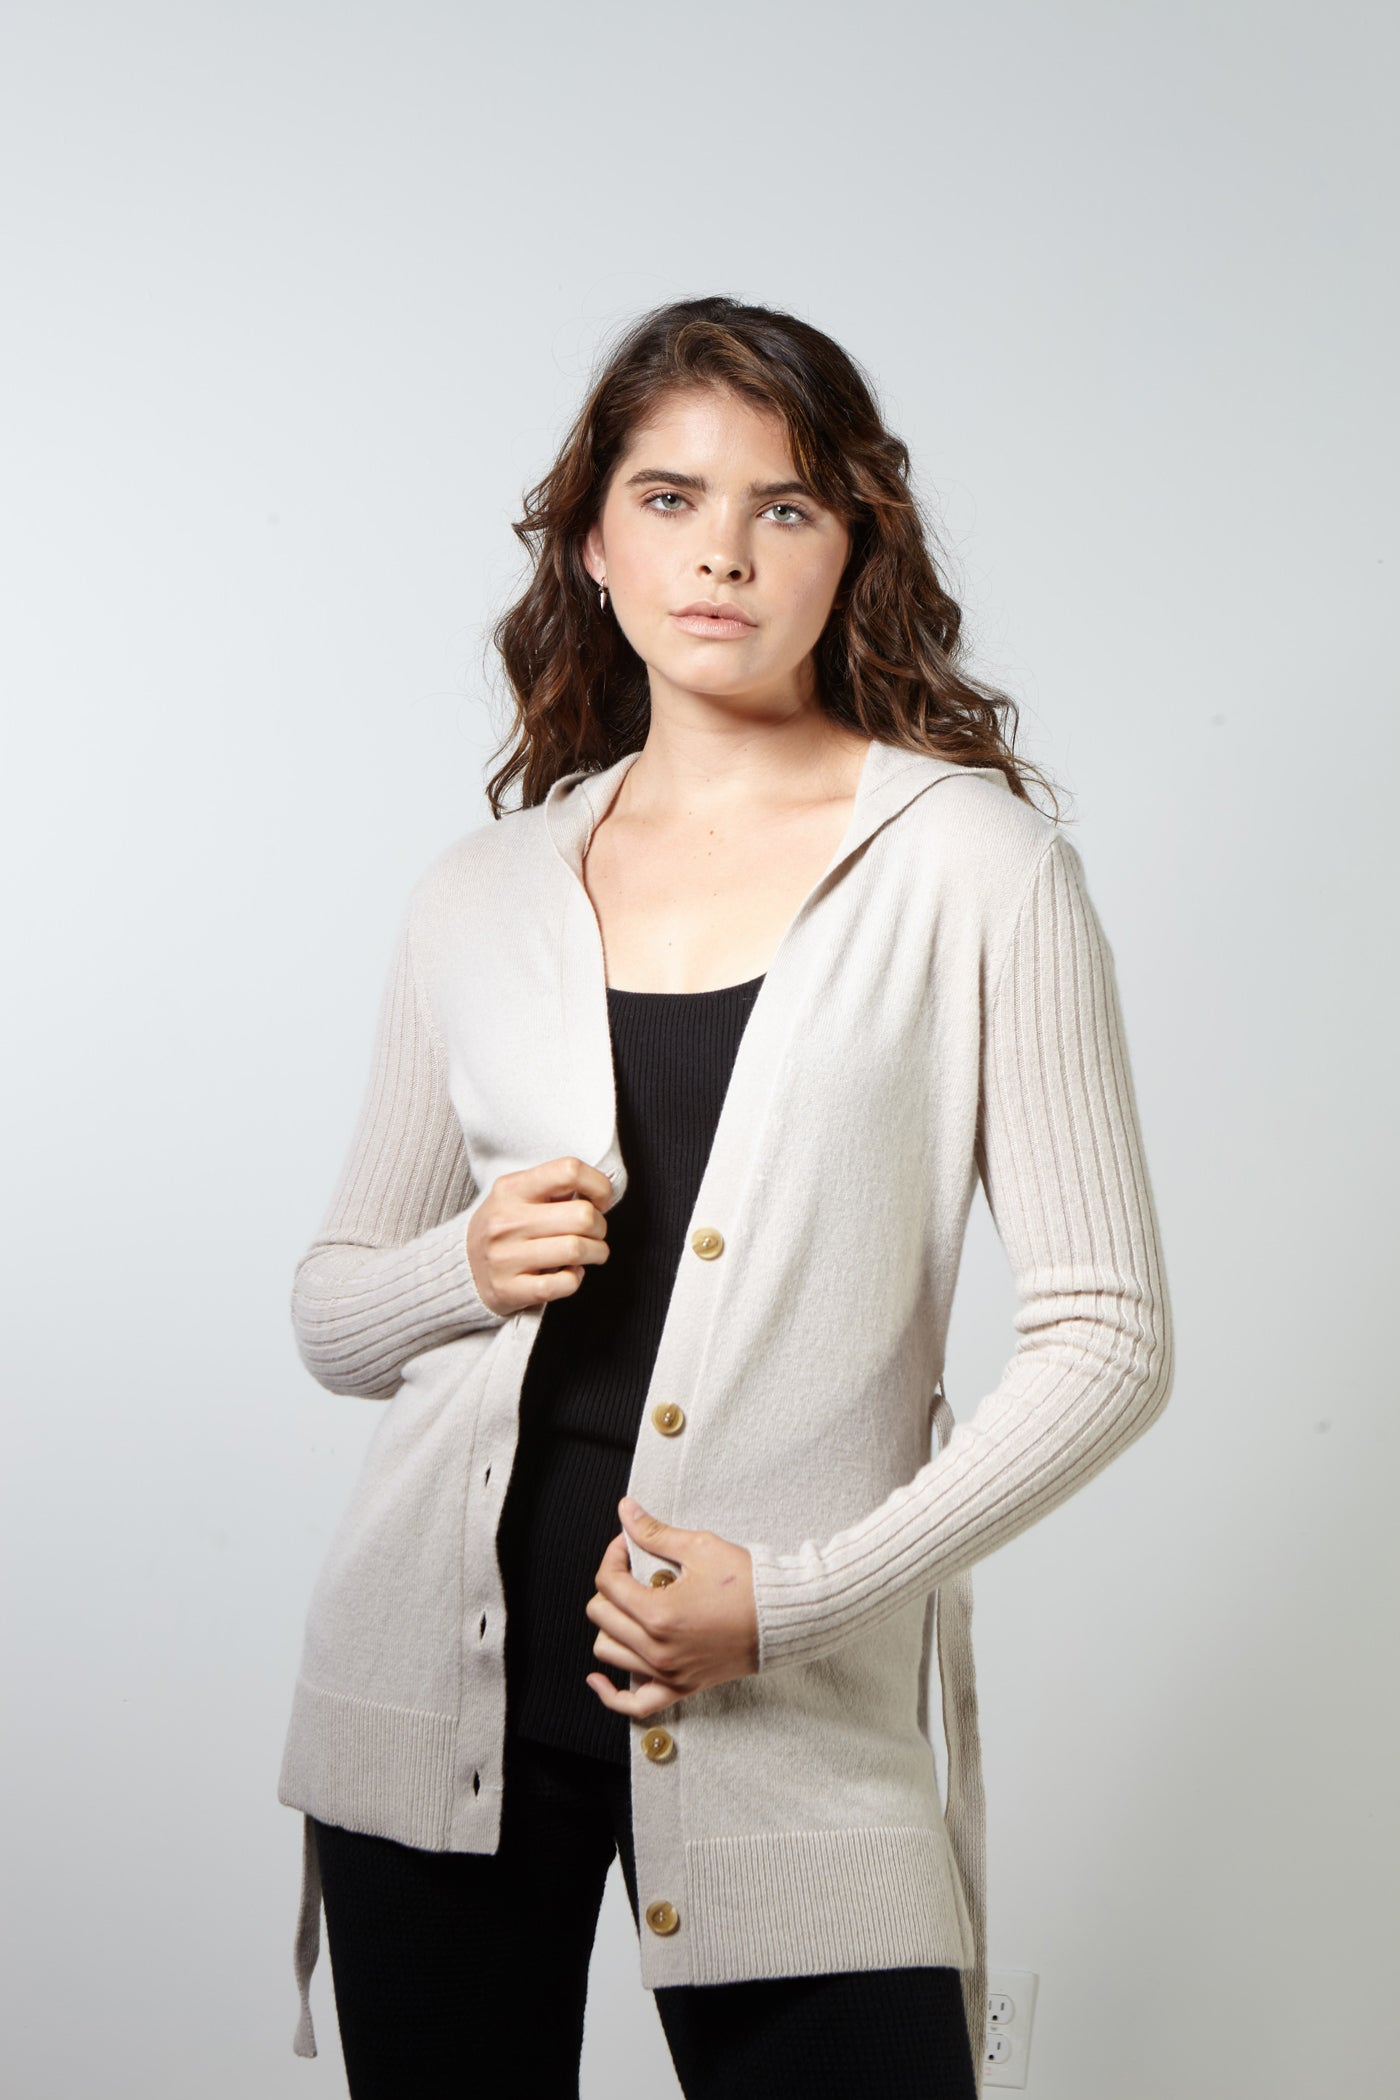 Montefeltro Hooded Cardigan